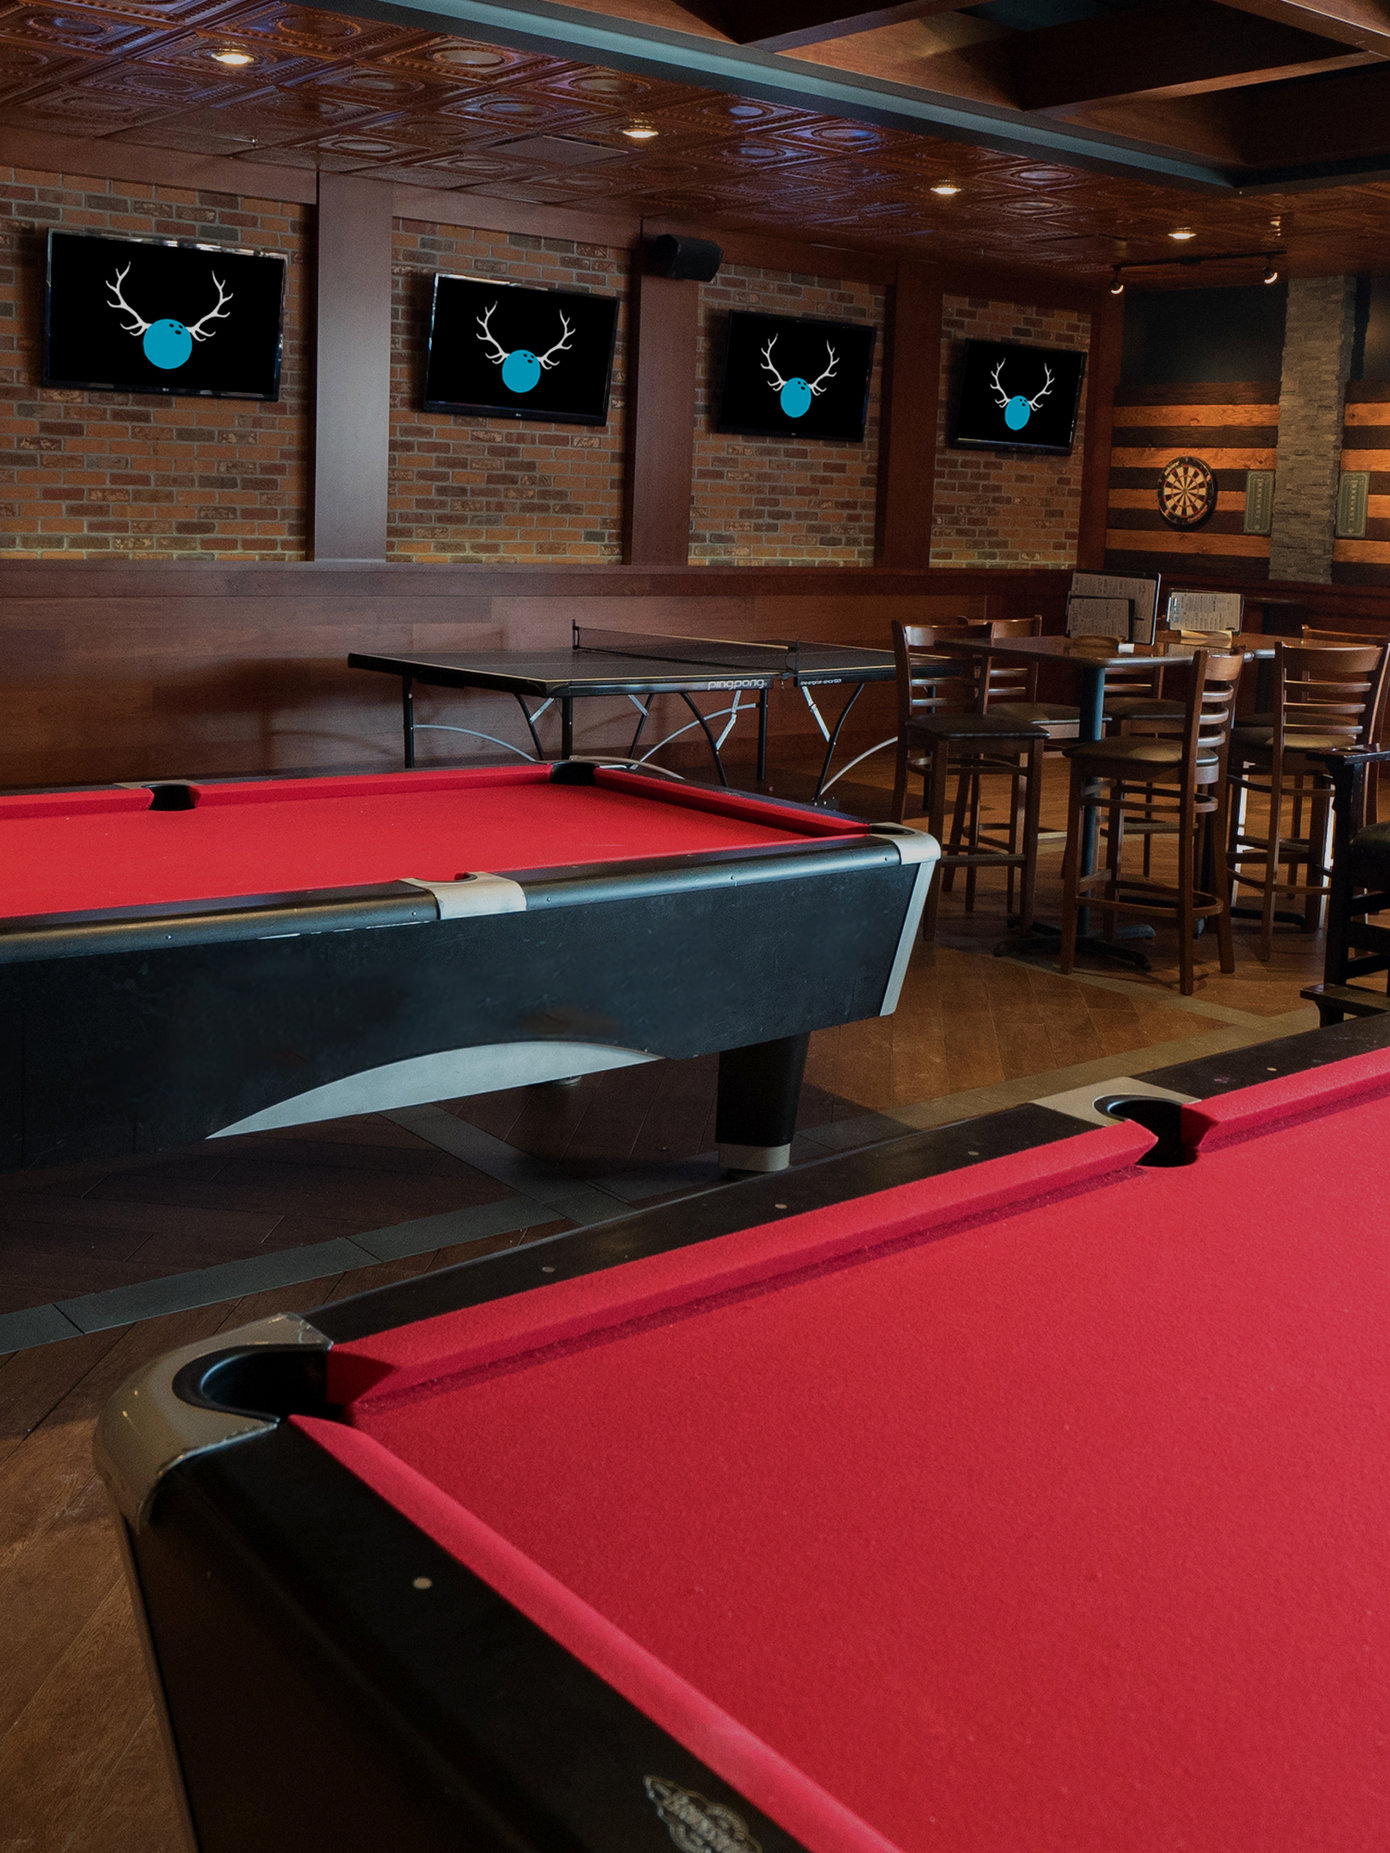 Red billiards tables with darts in the background